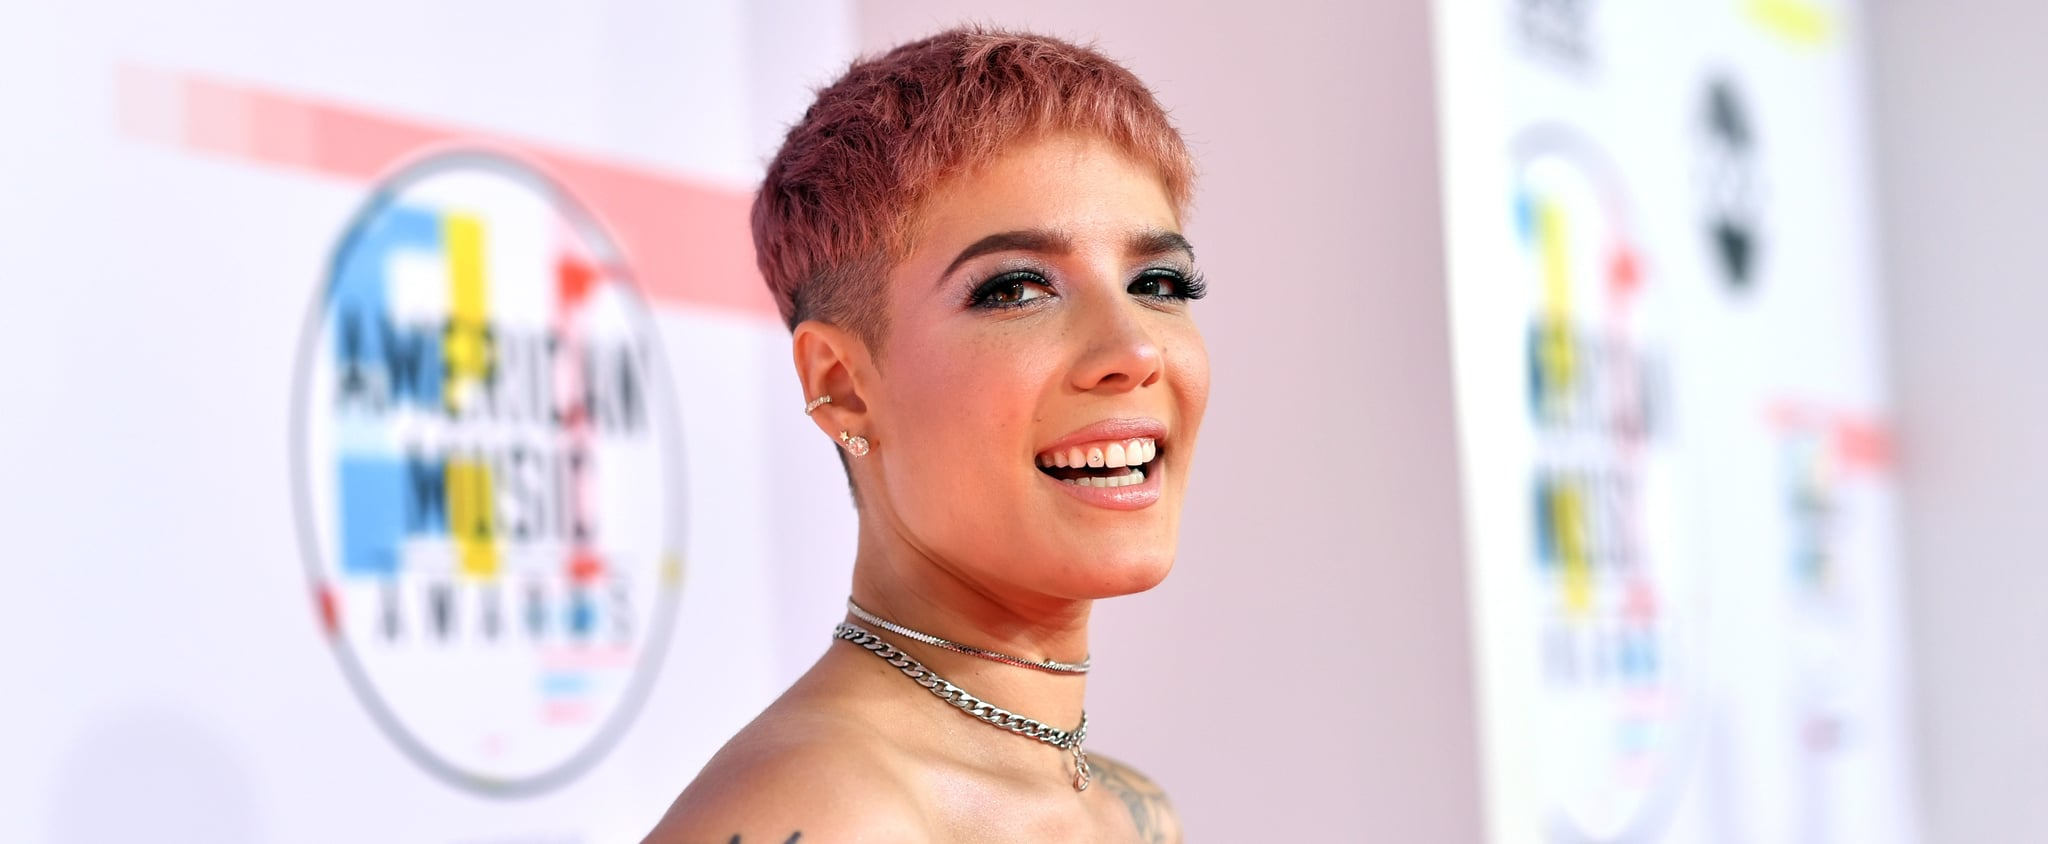 Halsey Announces Pregnancy on Instagram